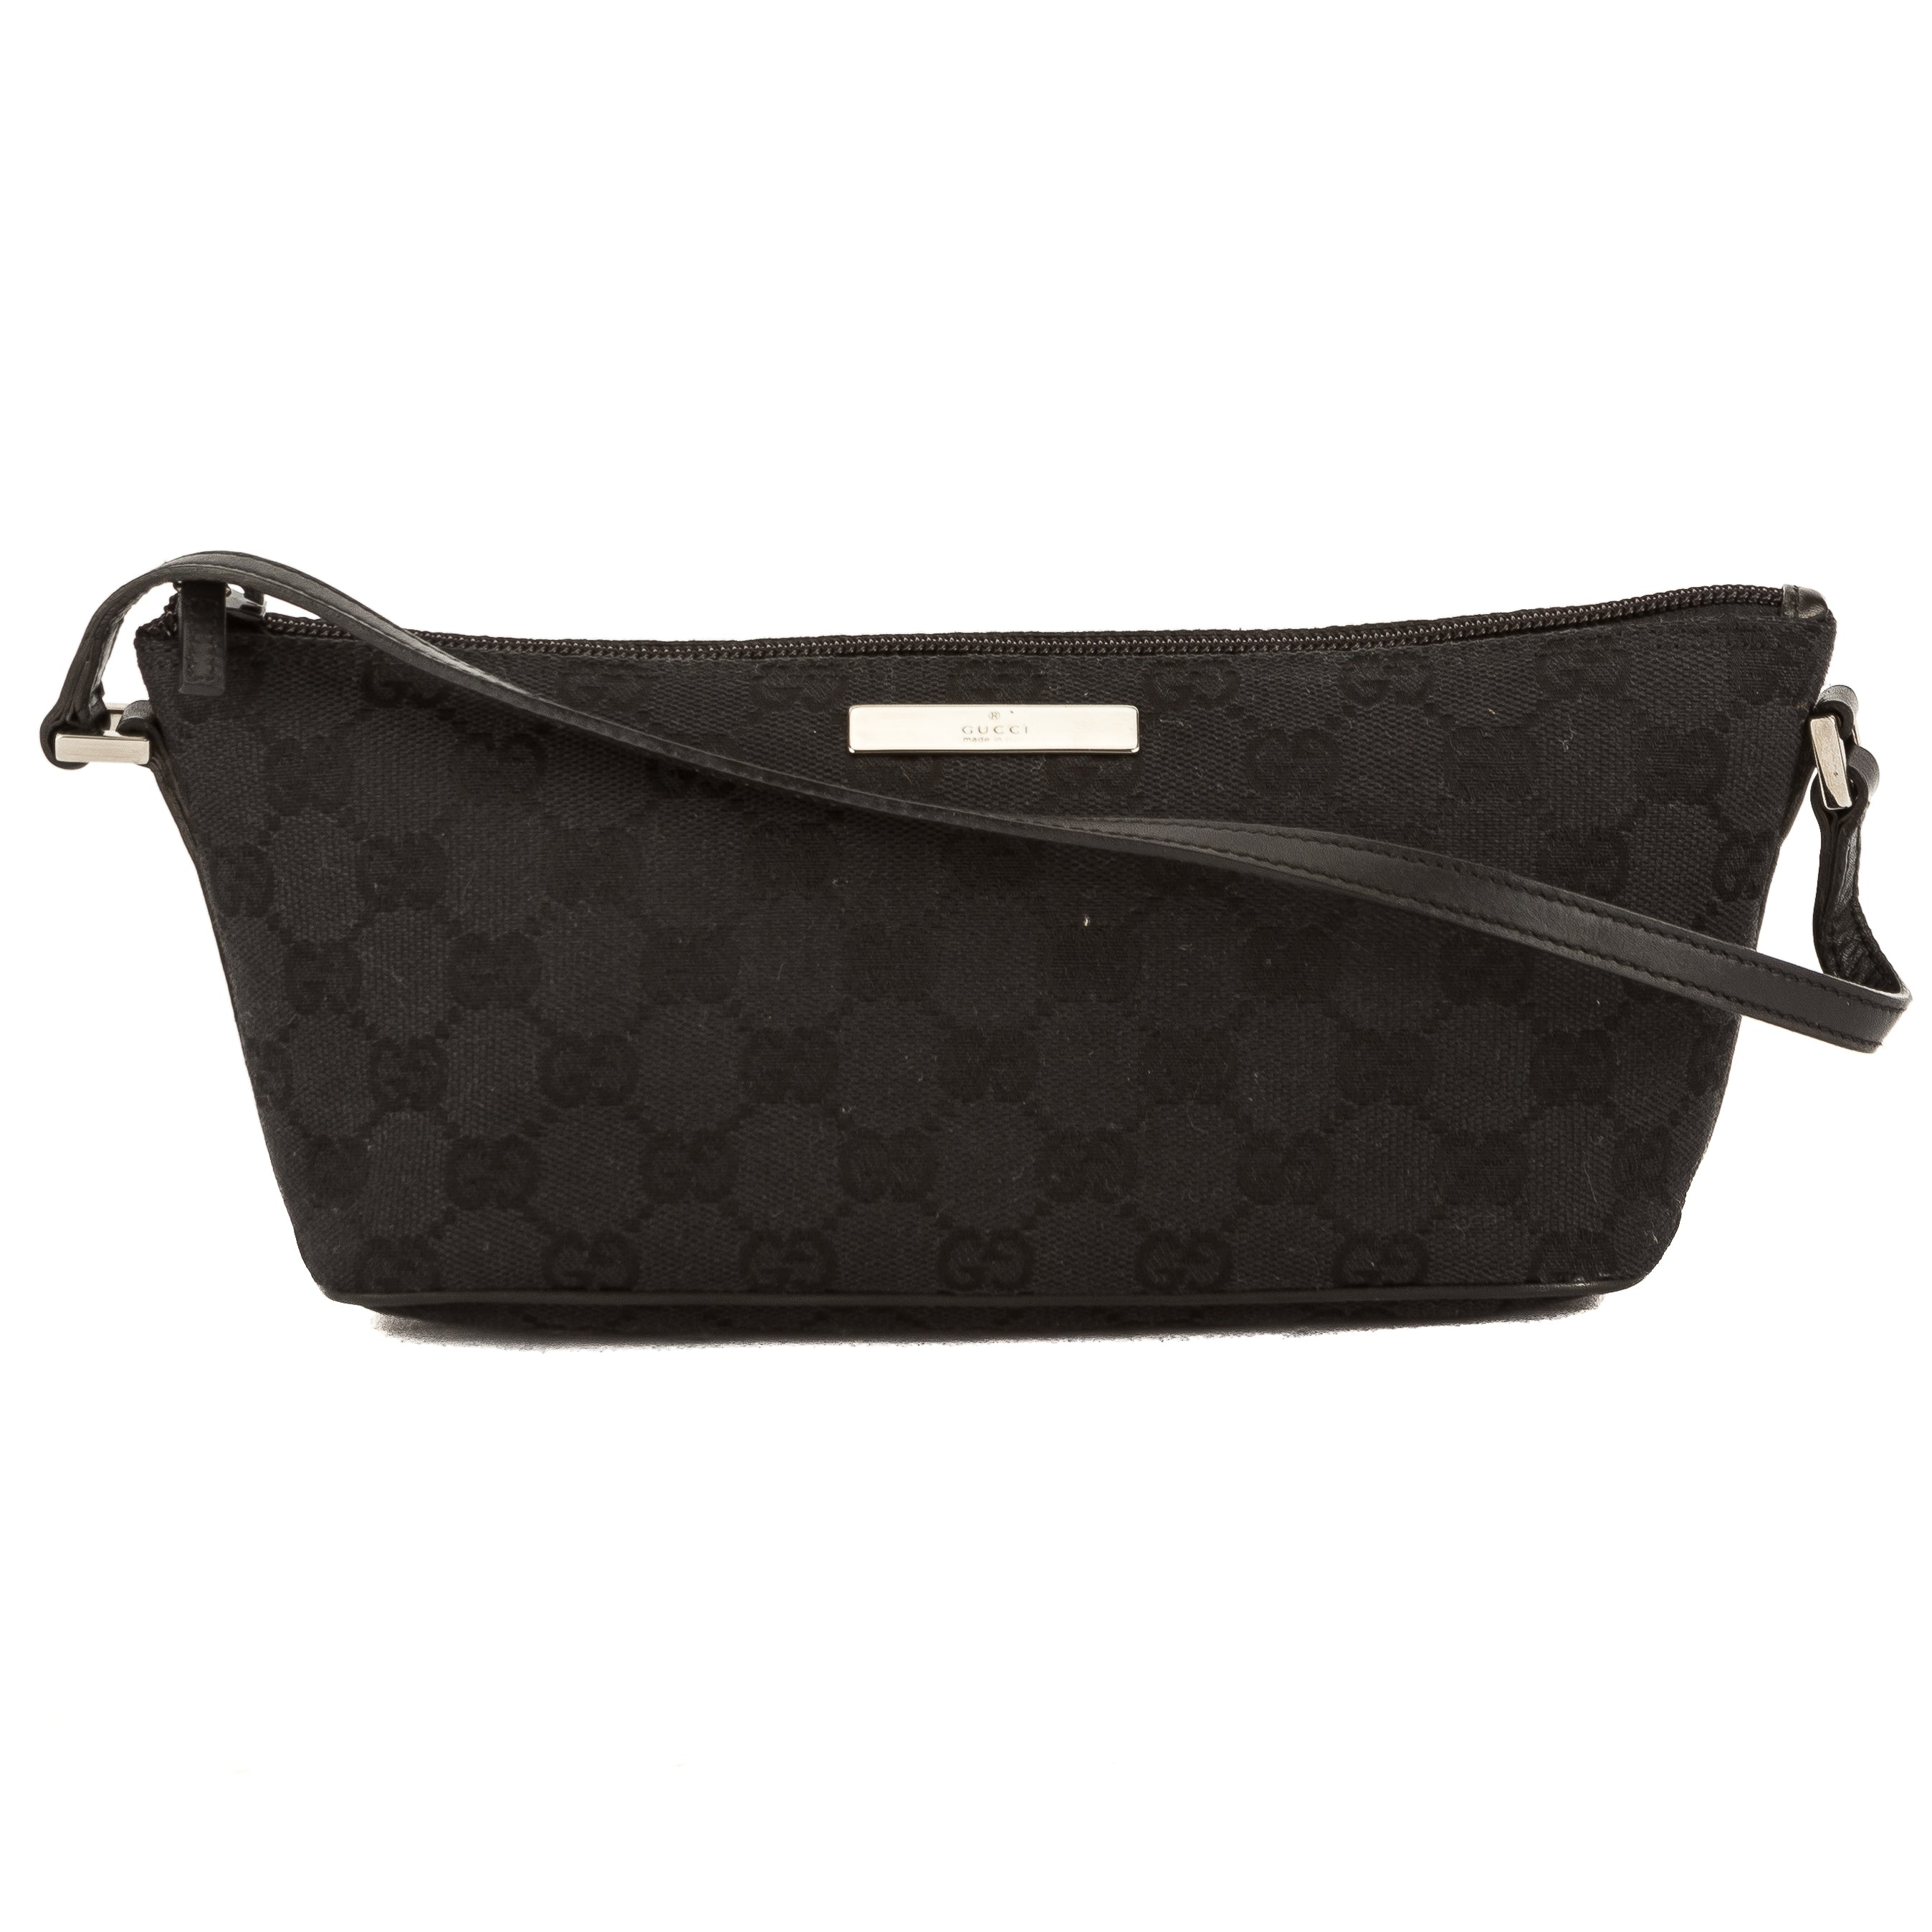 841cd8abce9 Gucci Black Leather GG Monogram Canvas Pochette (Pre Owned ...